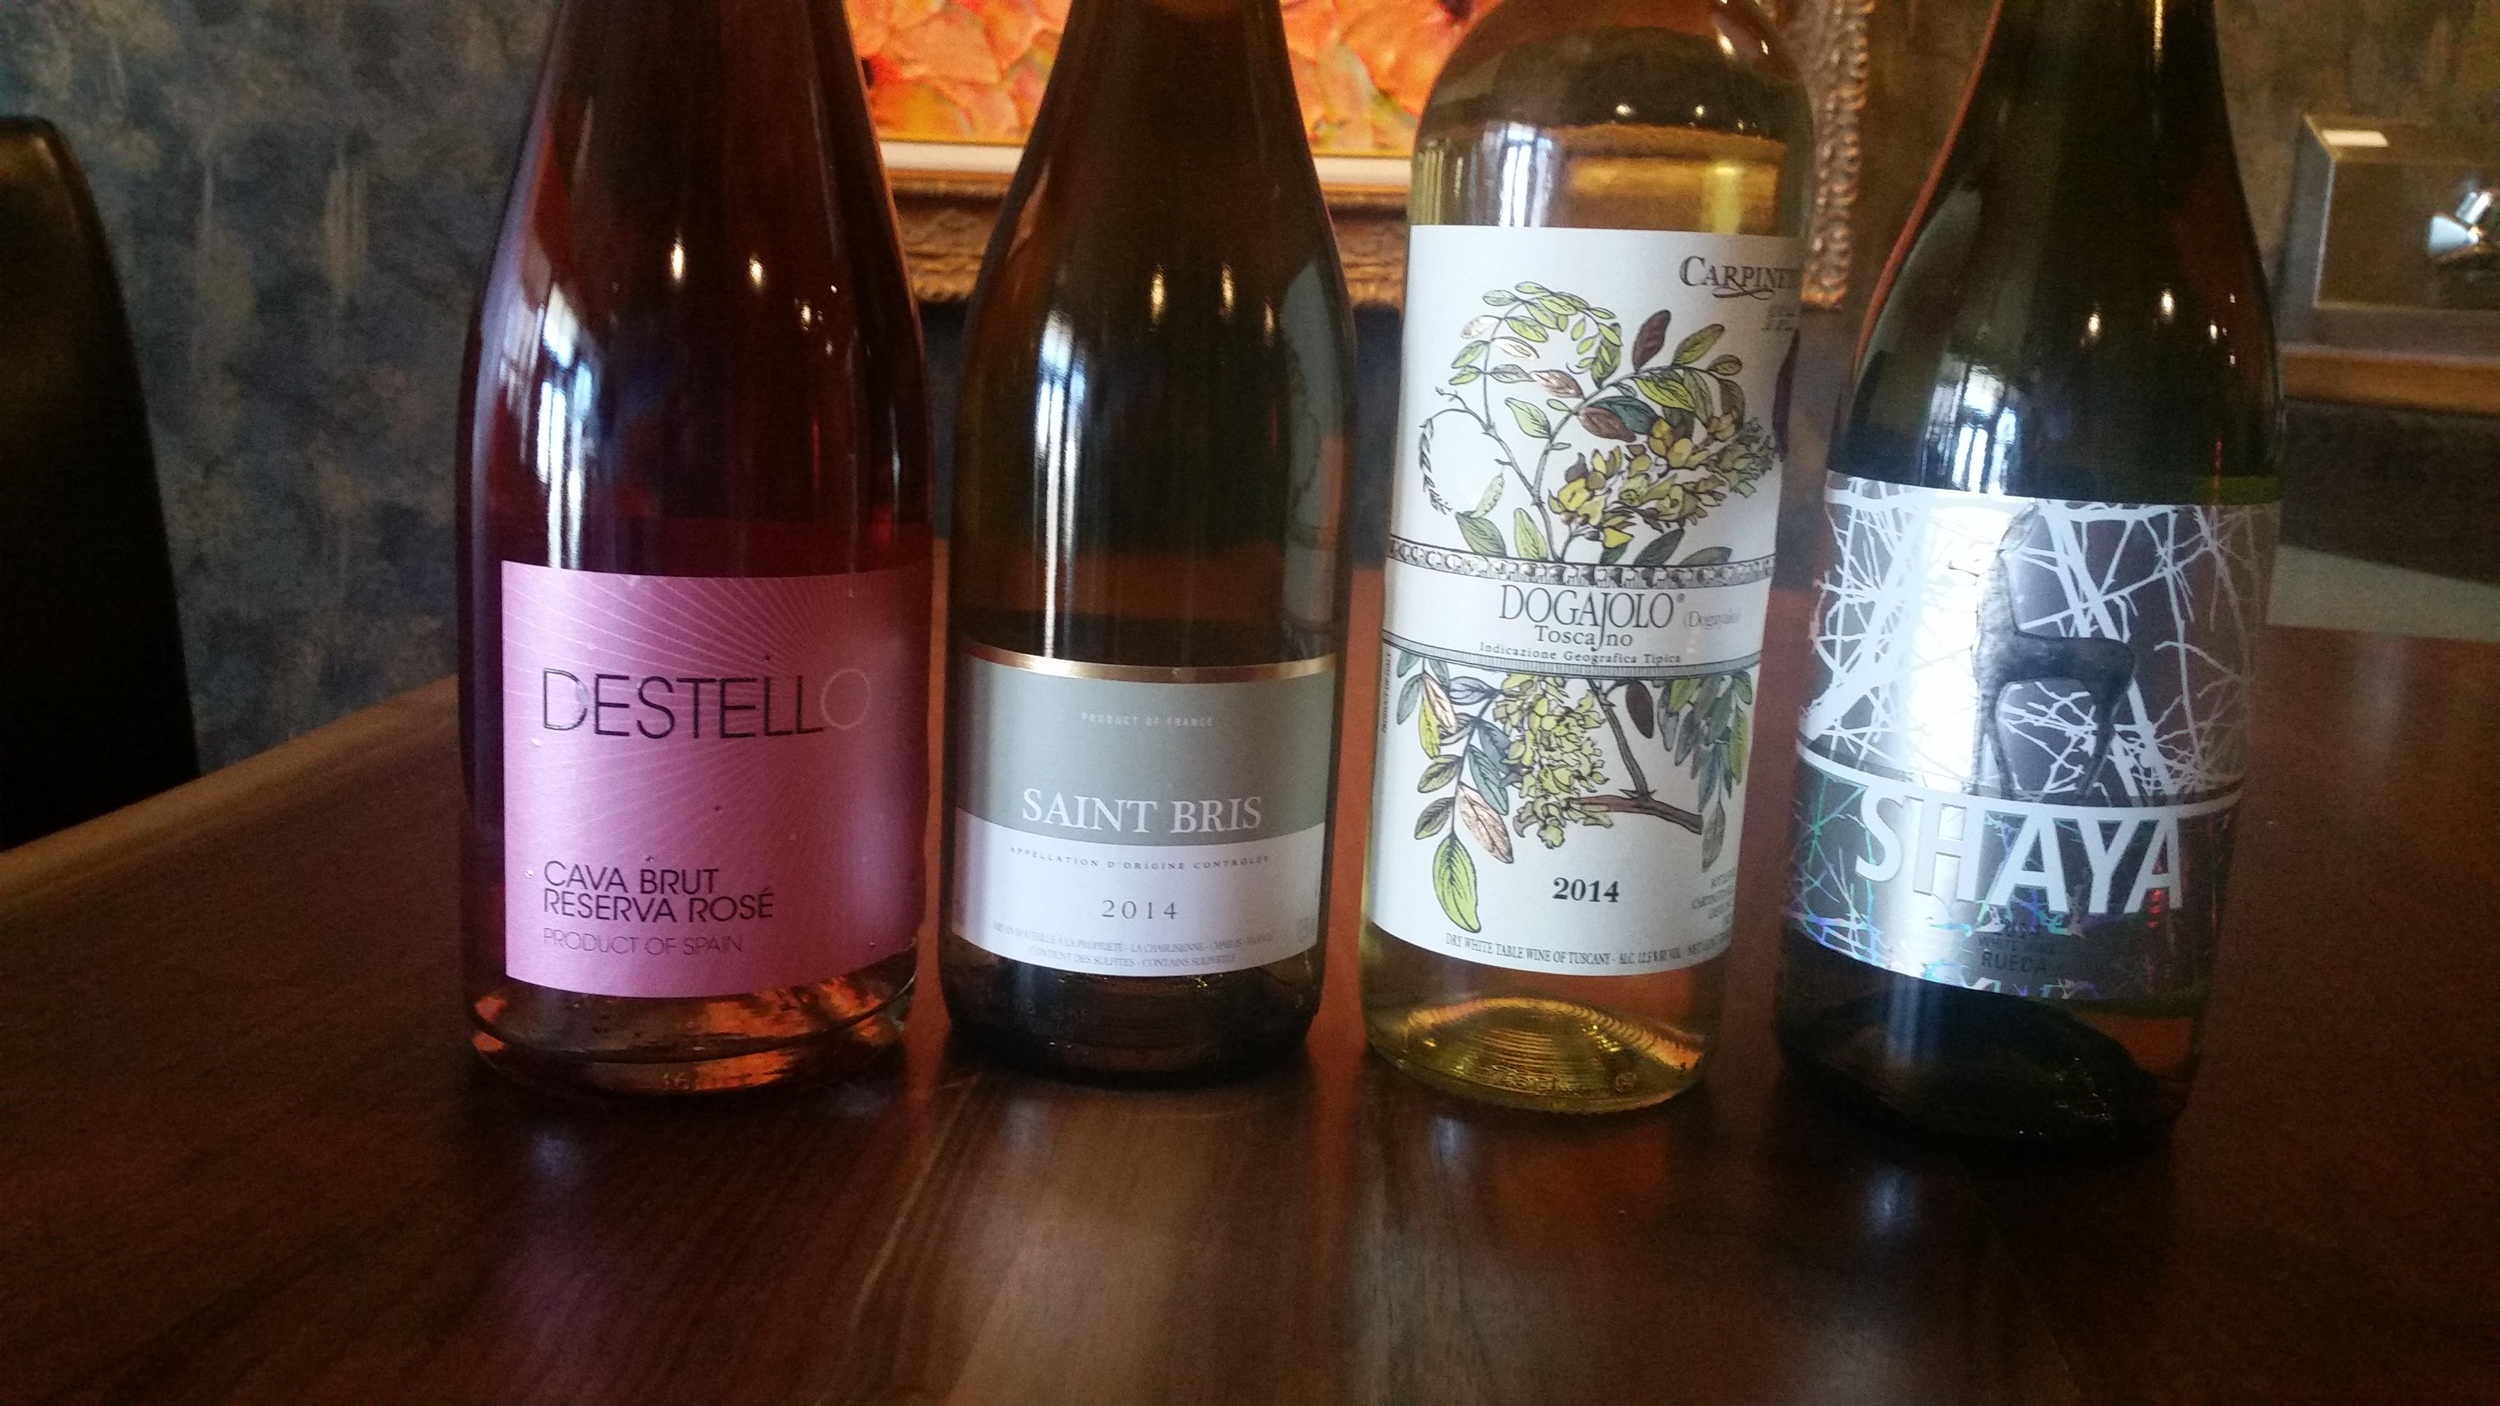 A Rose & 3 Whites from Hannah's pairing -- The La Chablisienne Saint Bris is second from left